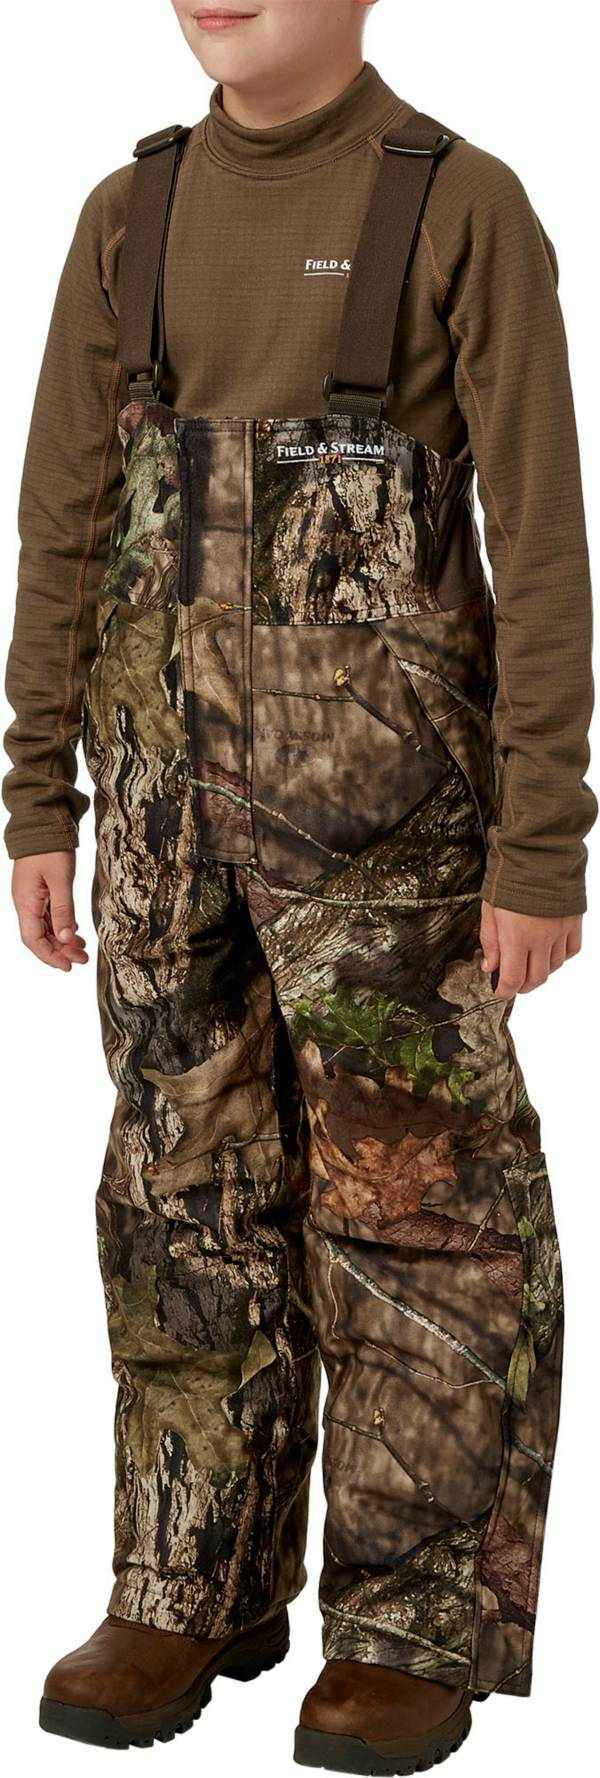 Field & Stream Youth True Pursuit Insulated Hunting Bibs product image